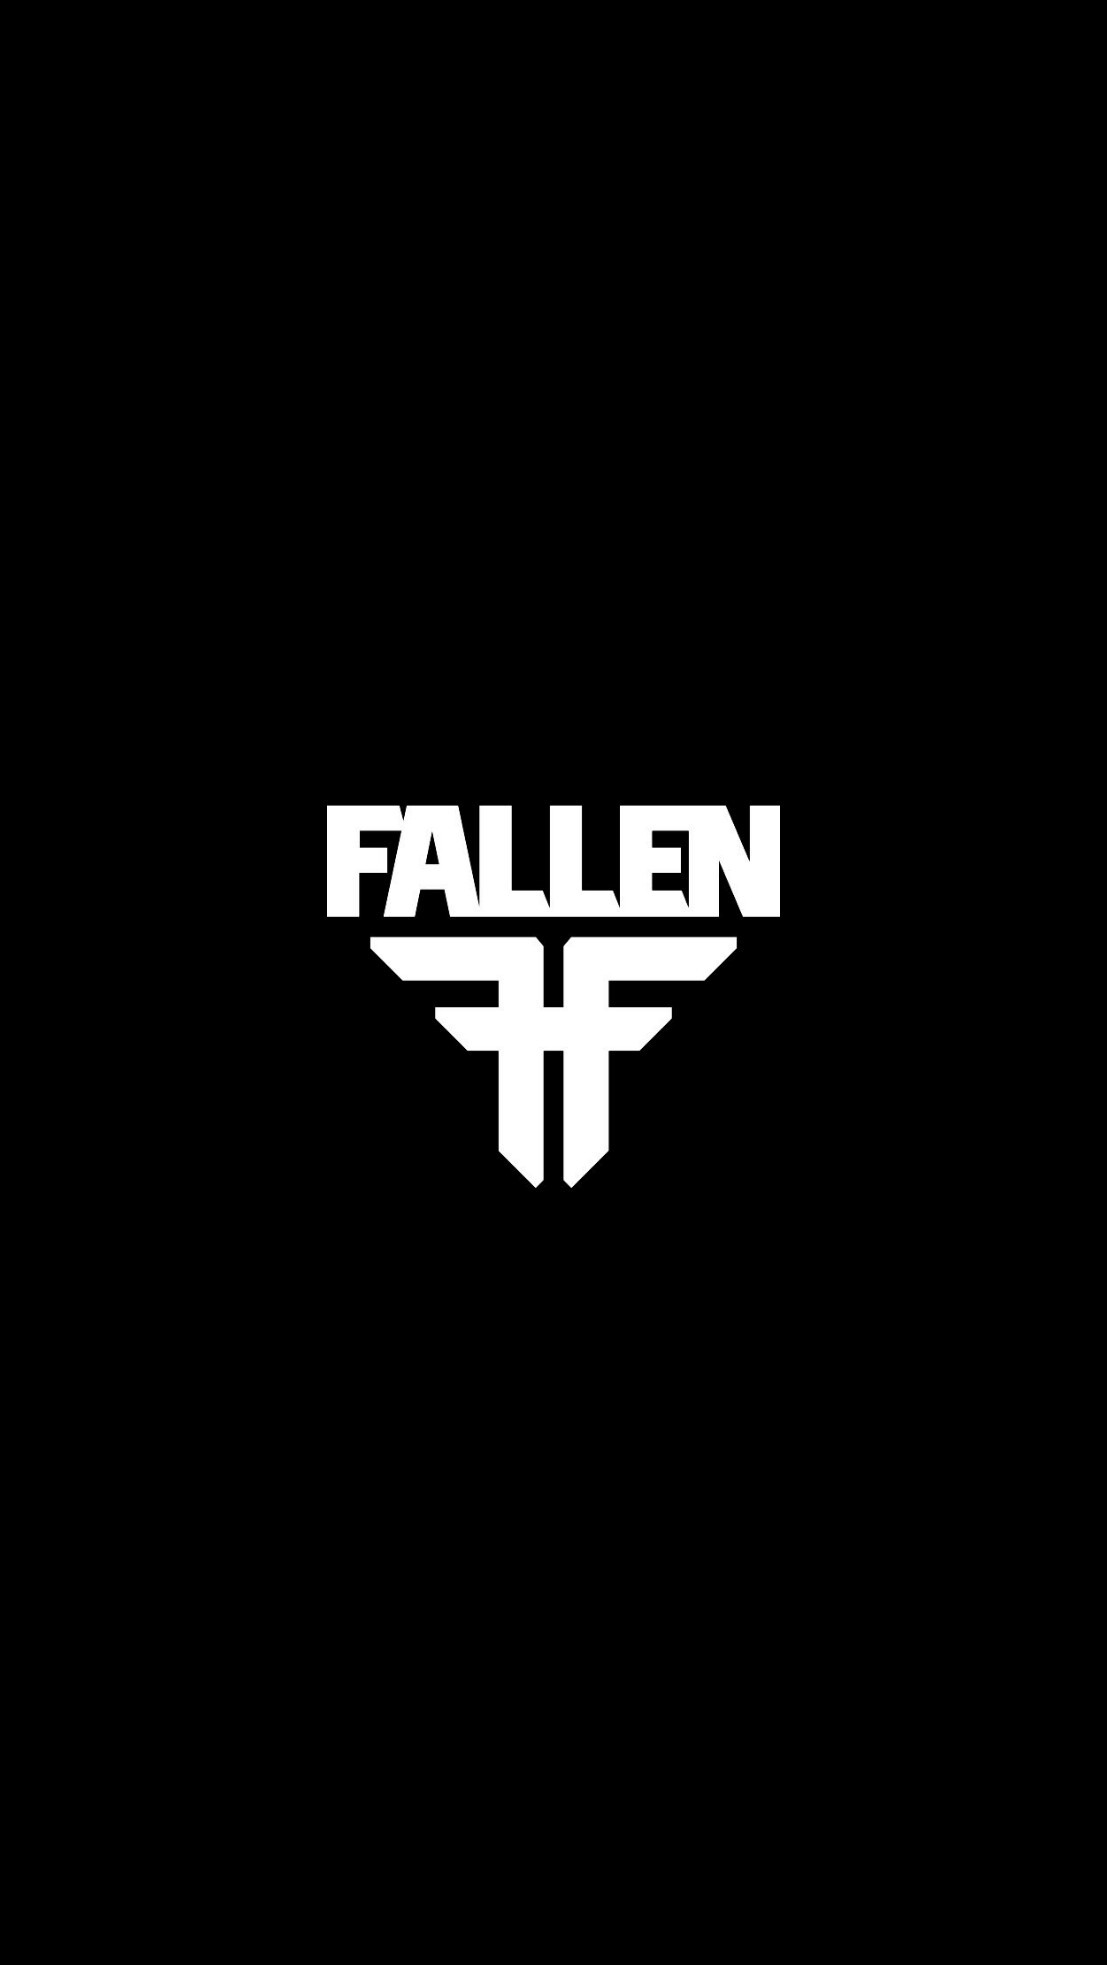 I like how for the Fallen logo It makes me feel like there's been a fallen  angle. The two F's reflected remind me of to wings, and fallen with two  wings …